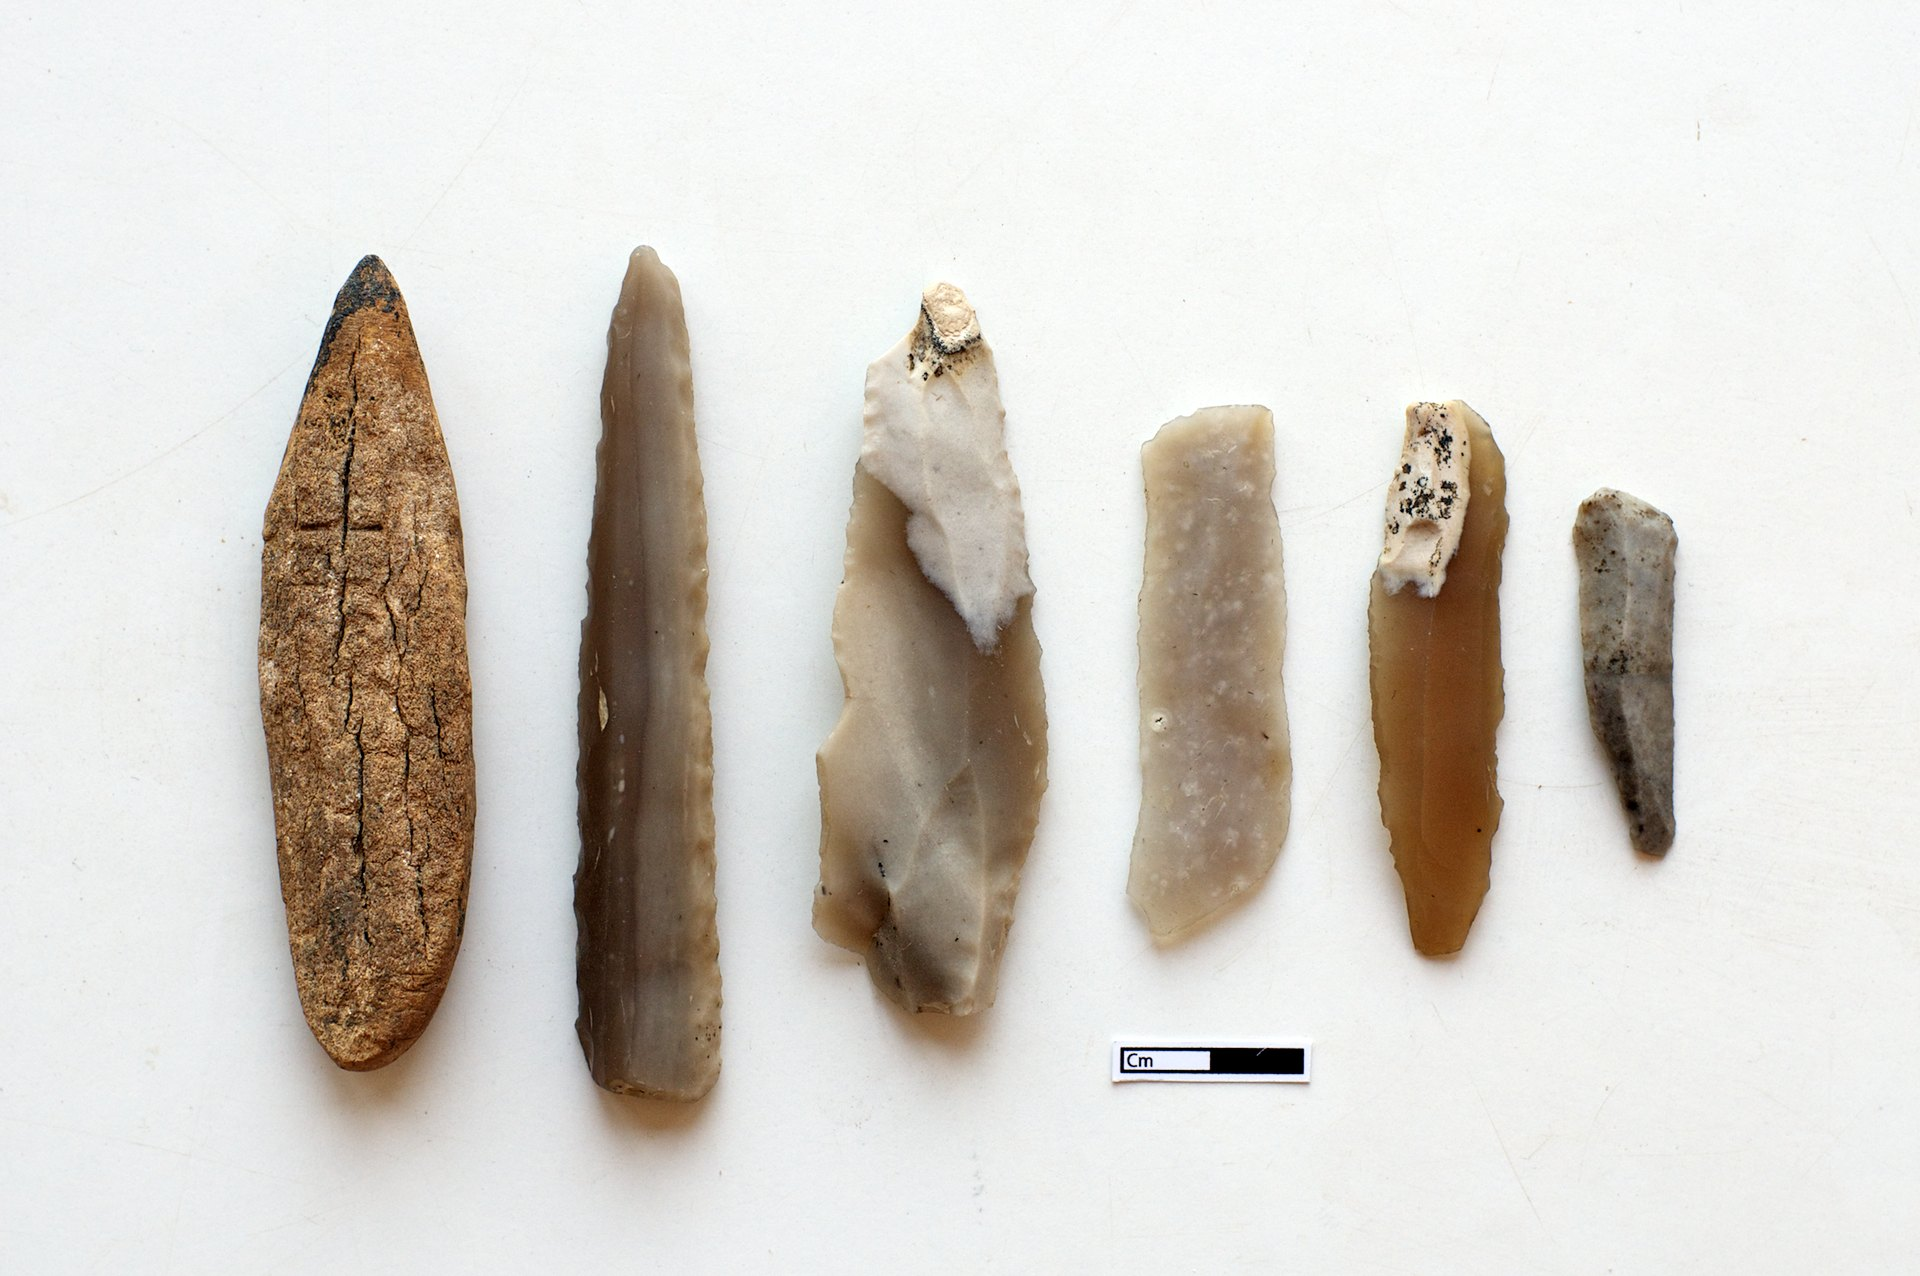 Worked flint and bone, Çatalhöyük, Turkey.